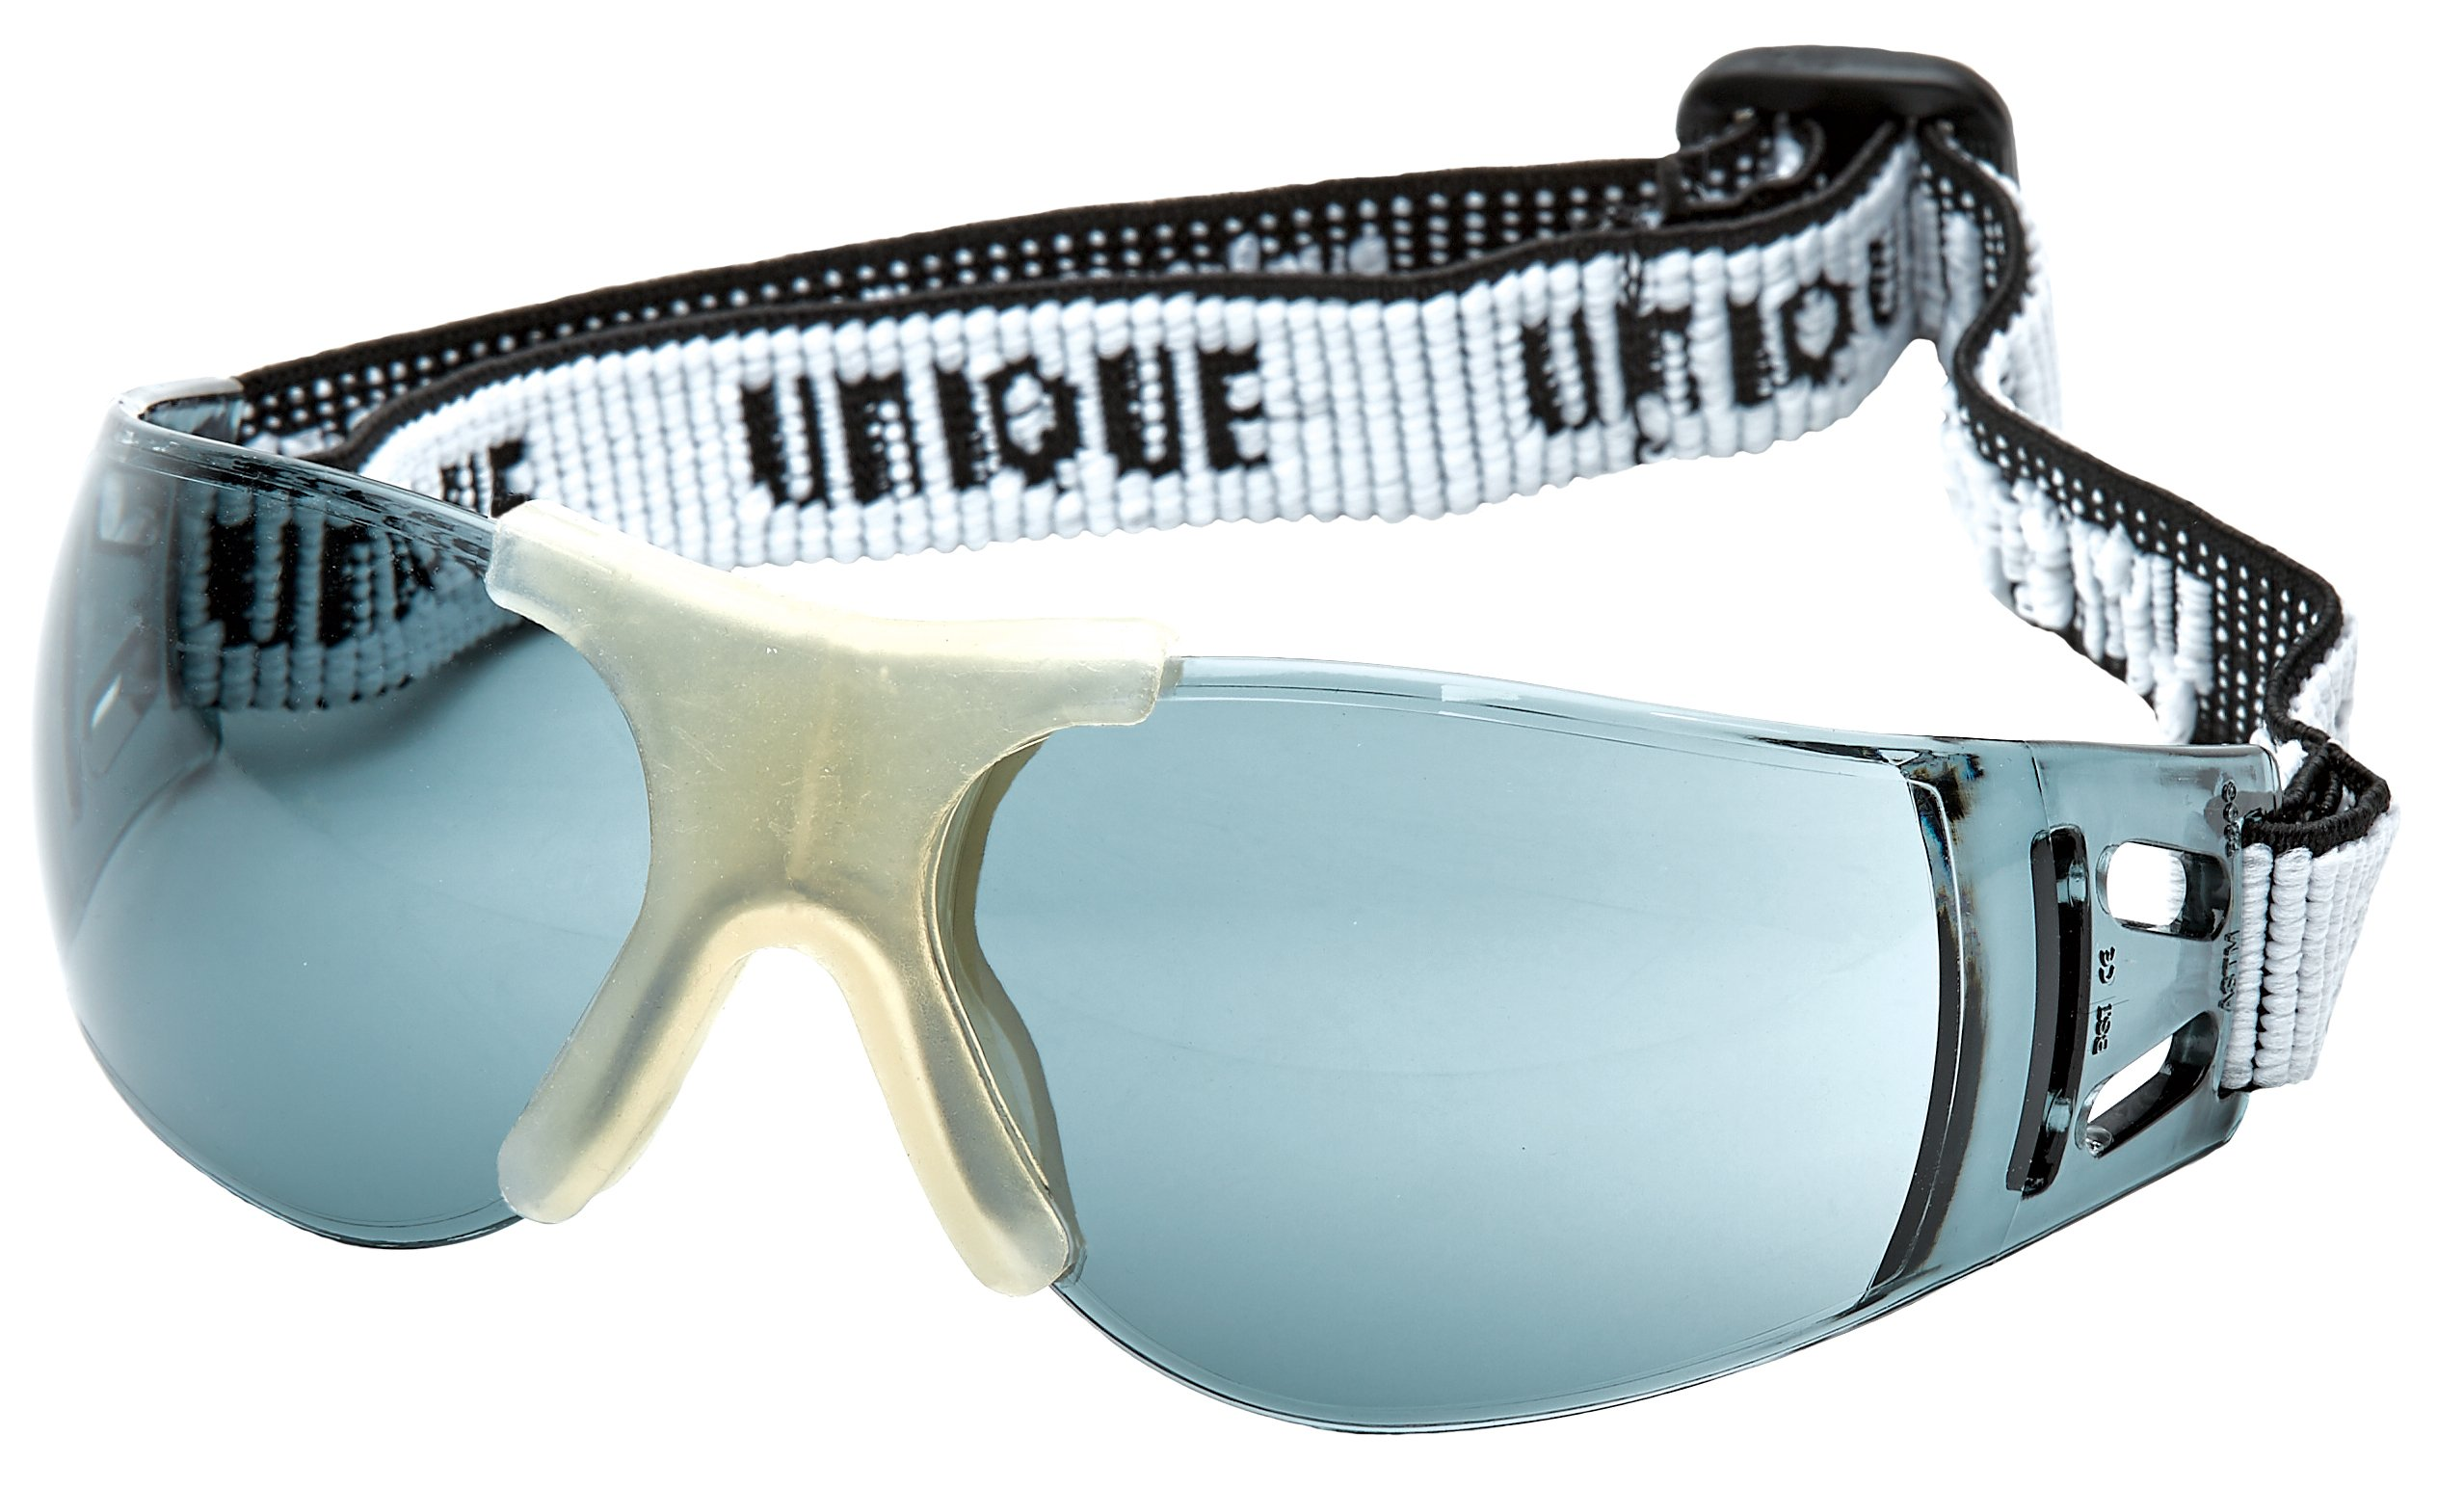 Unique Sports Super Specs Eye Protector Smoke Grey Tint